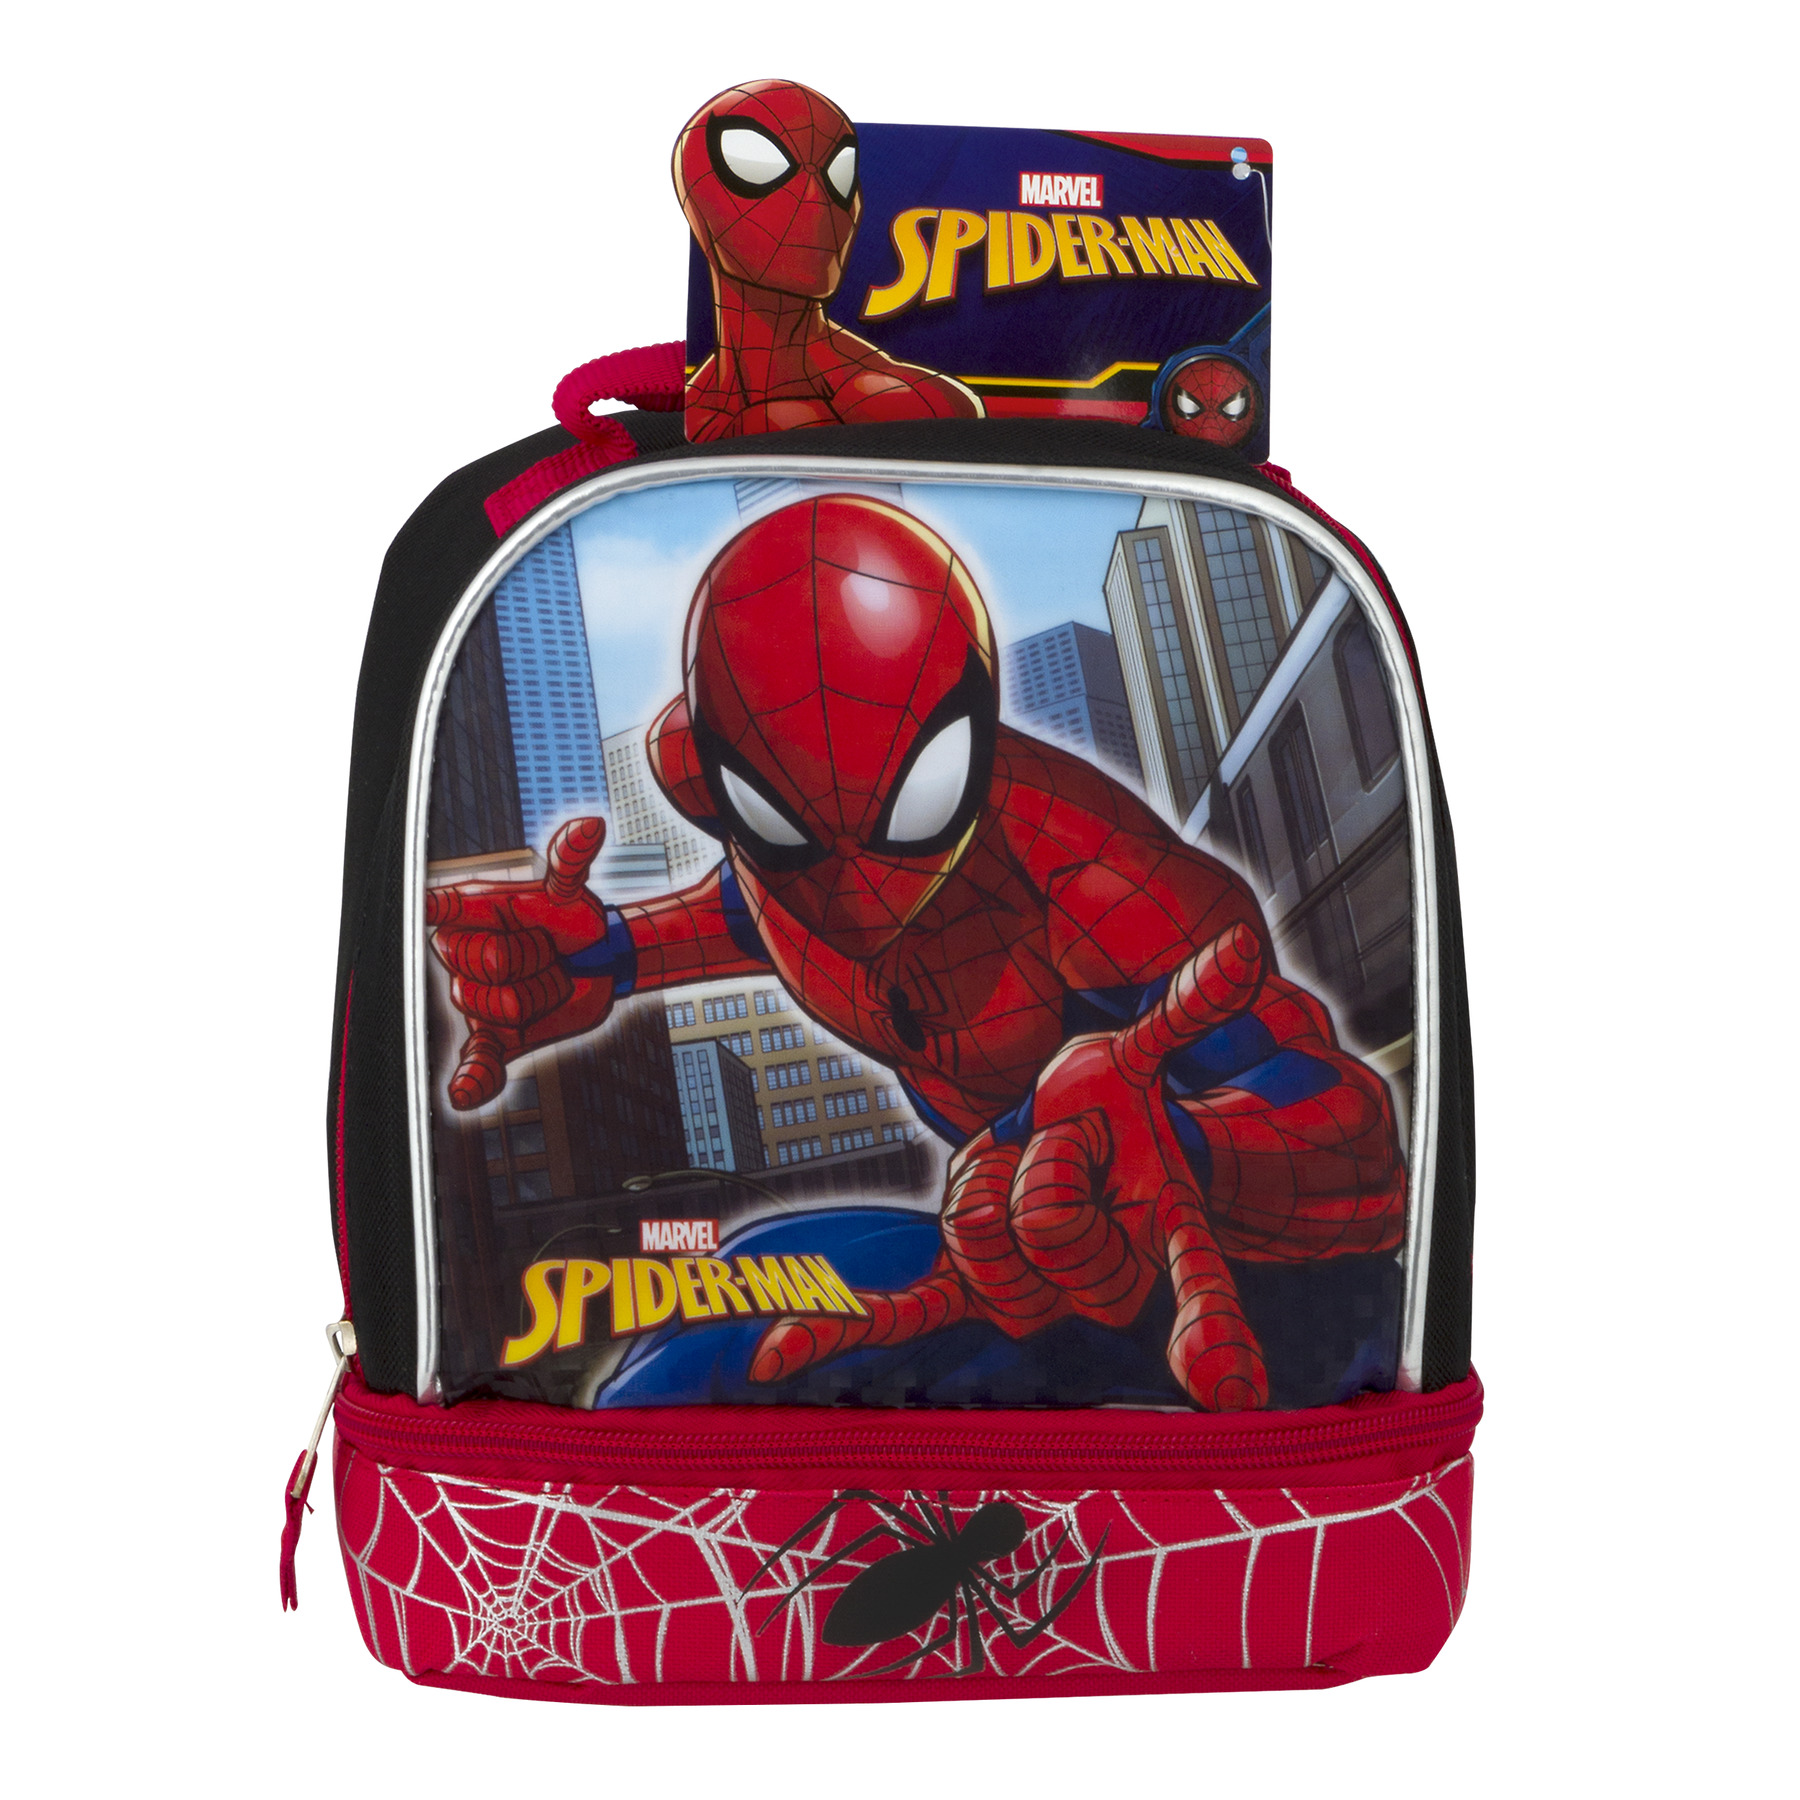 Marvel Spider-Man Lunch Bag, 1.0 CT